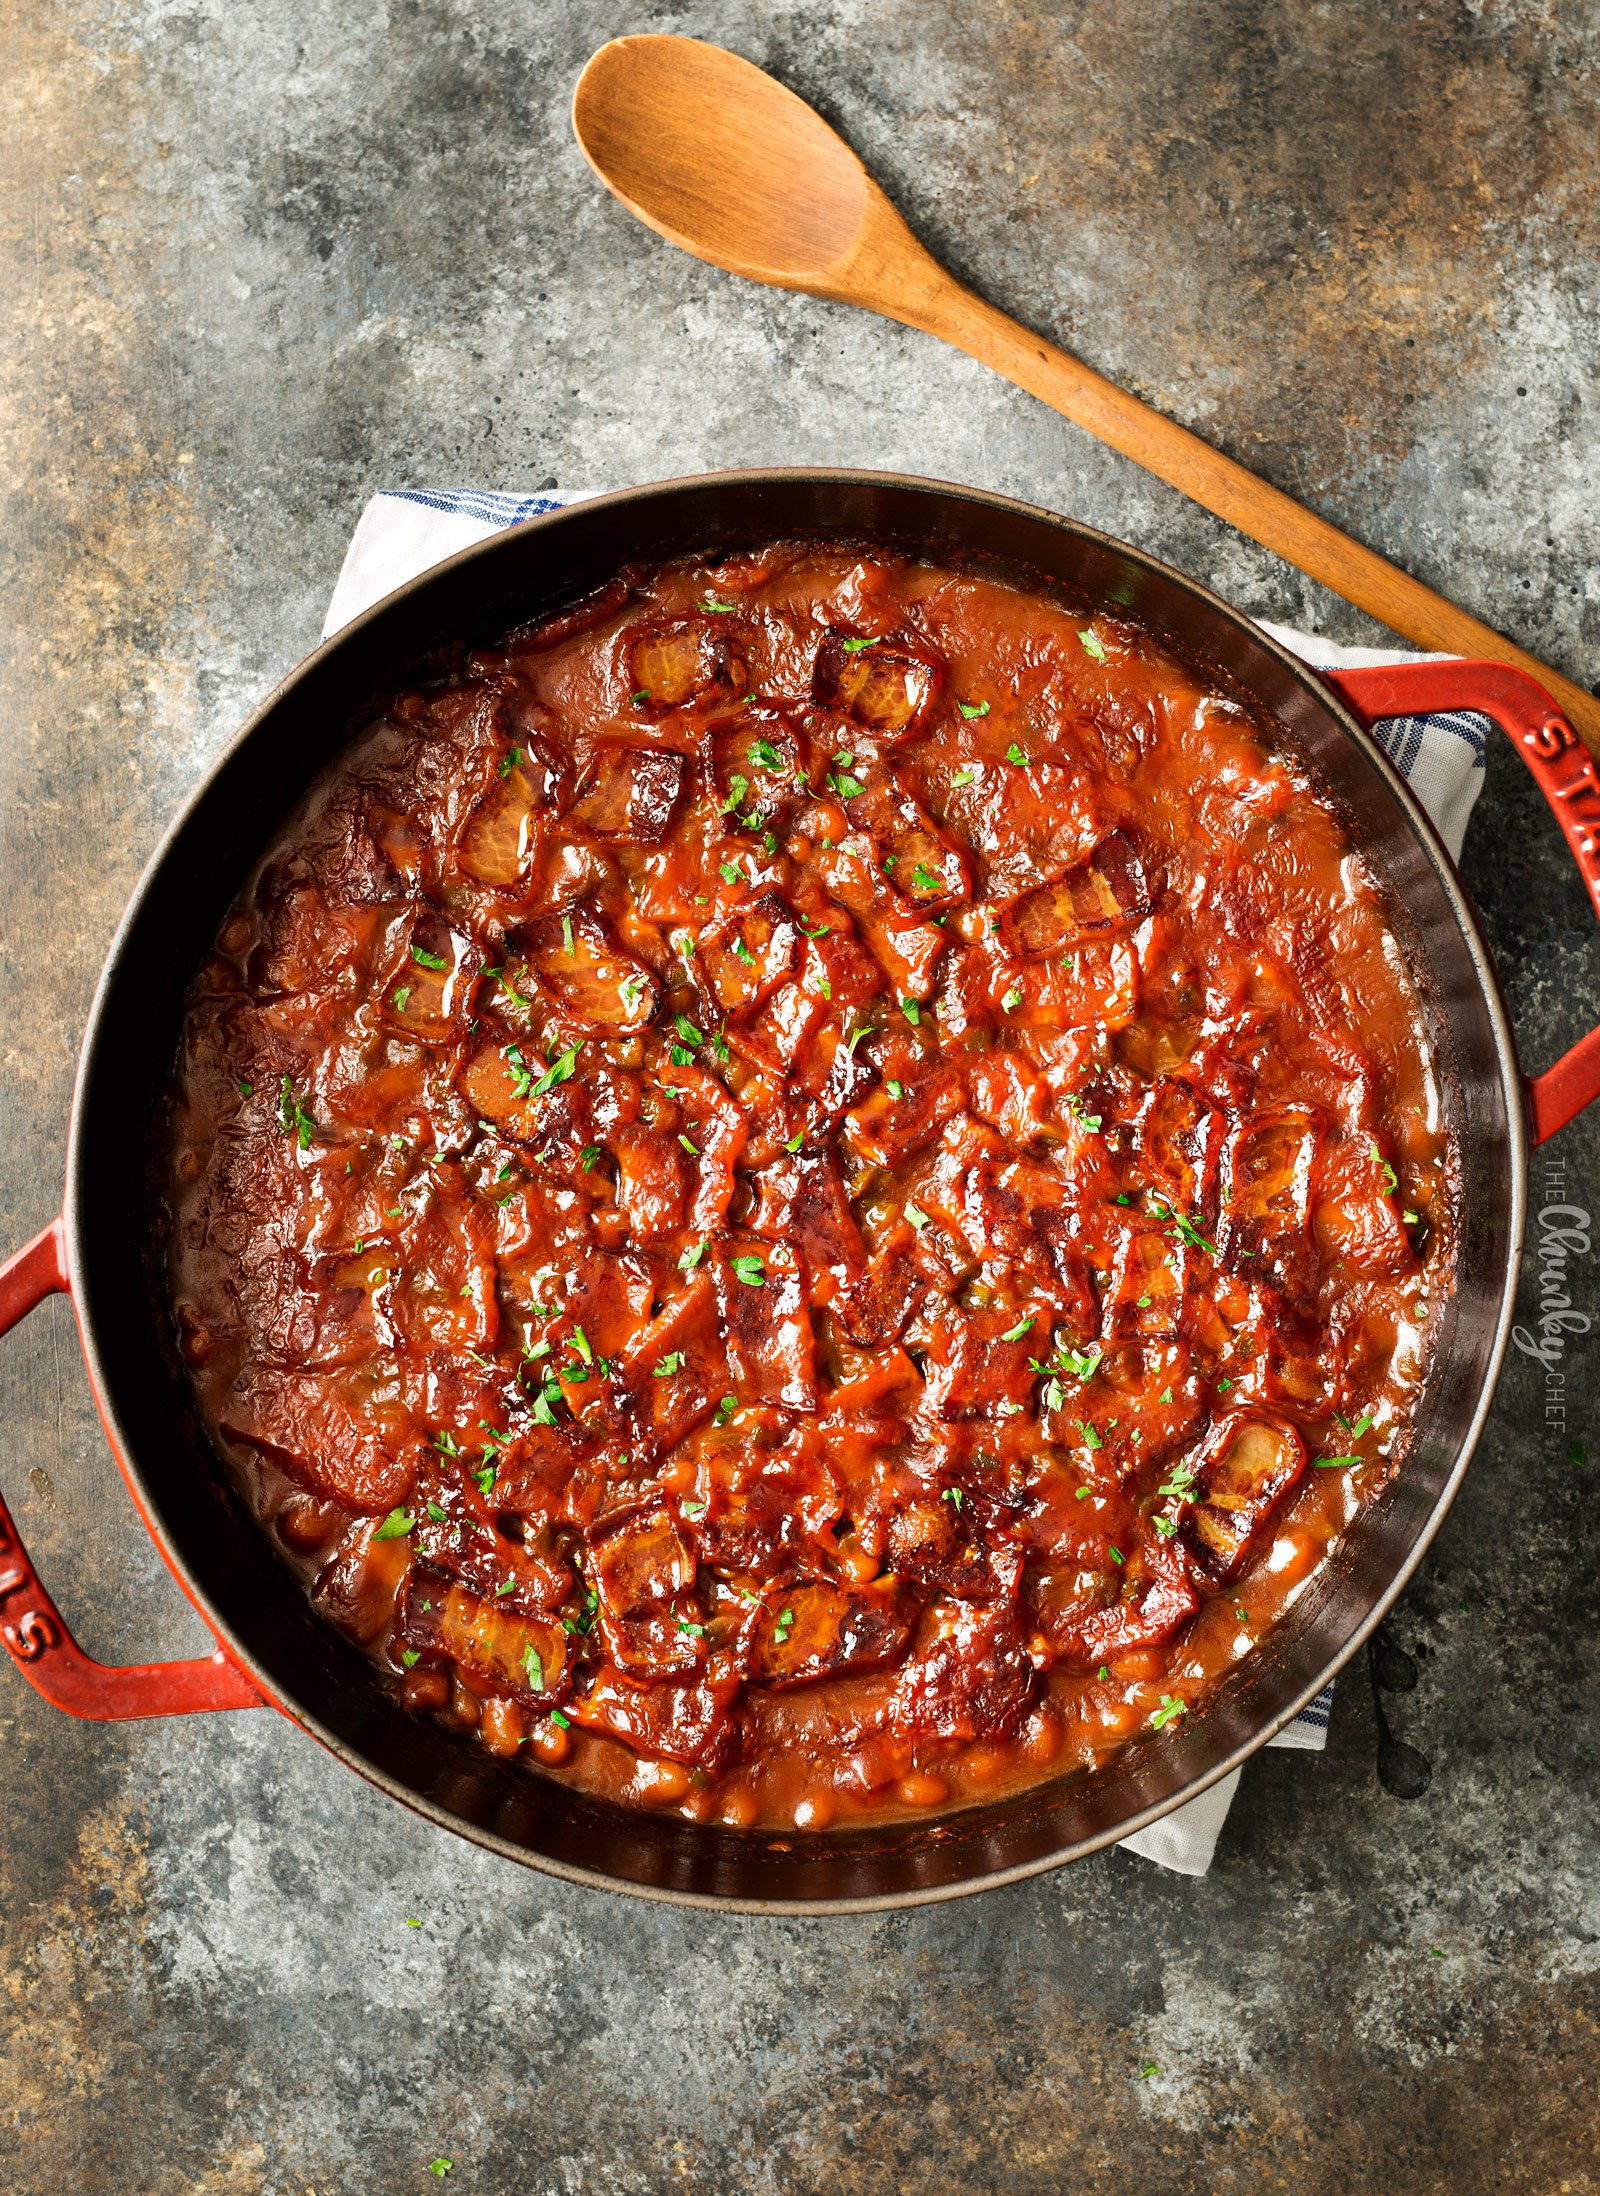 Spicy Baked Beans With Bacon  Perfect For Cookouts Or Summer Bbq's, These  Baked Beans